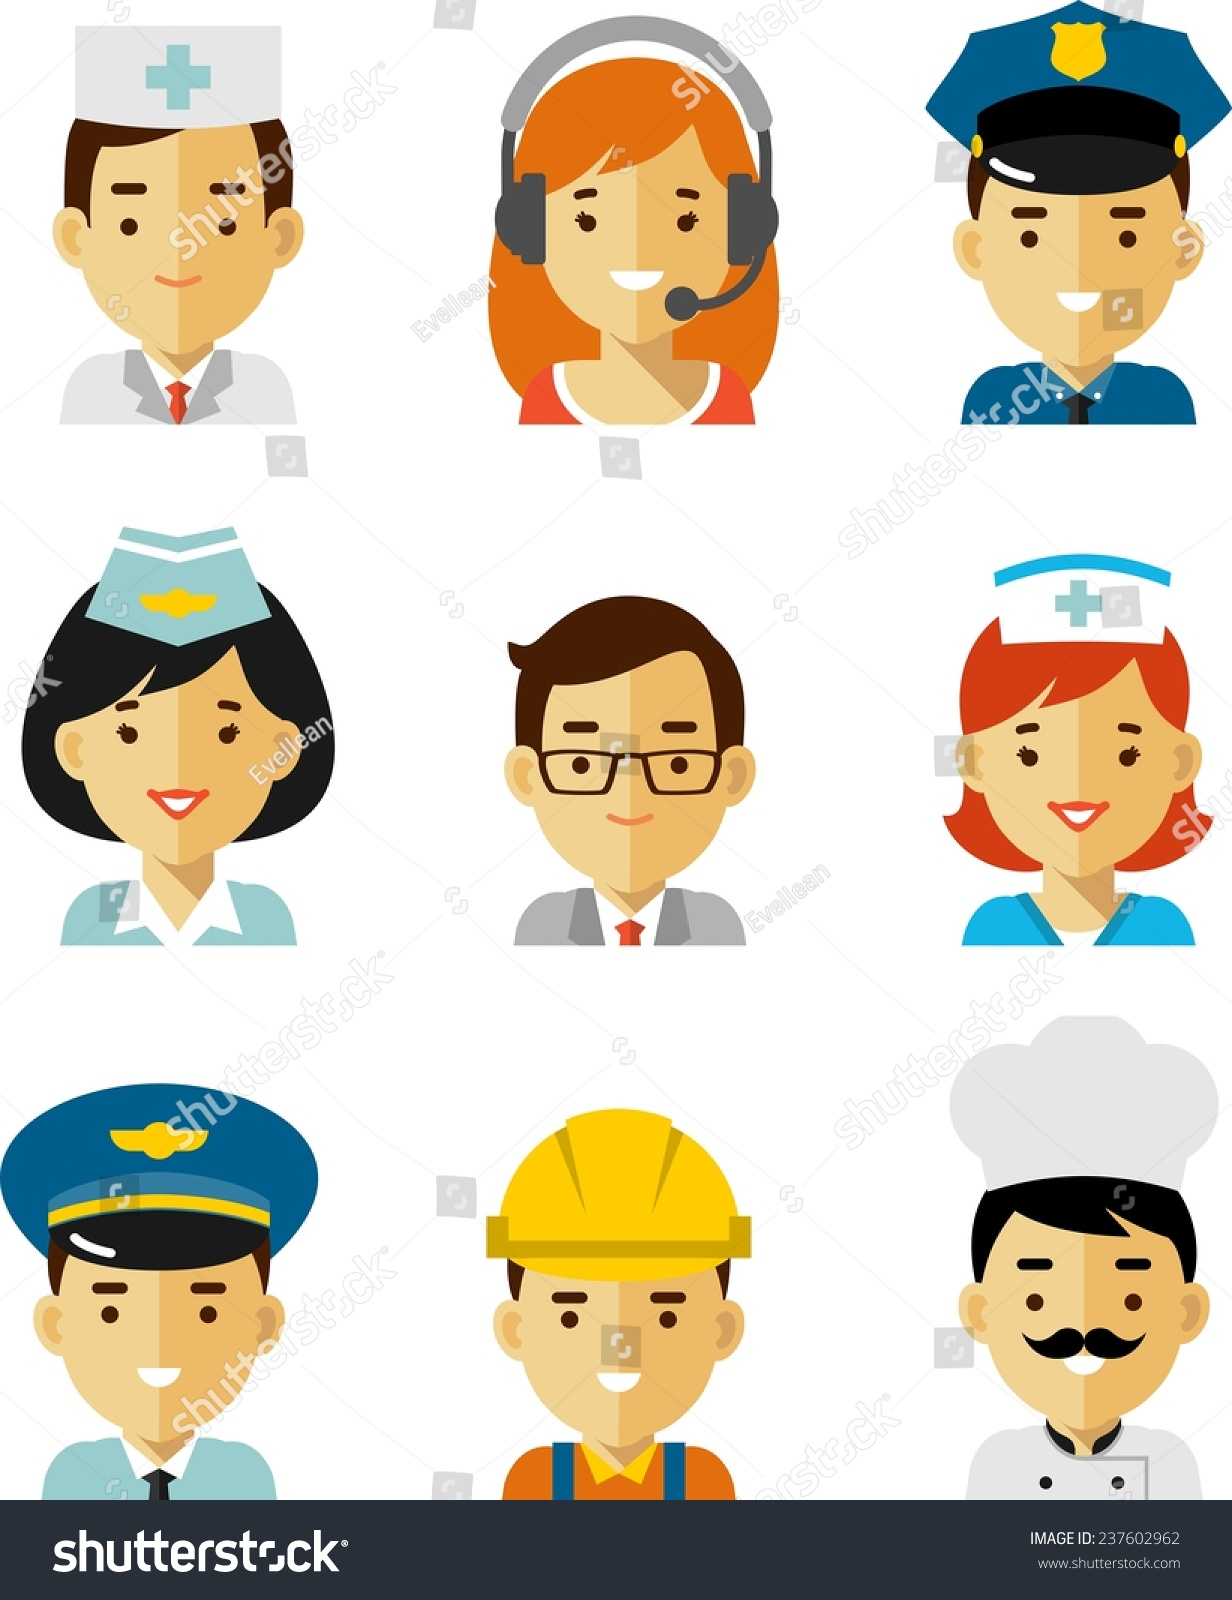 People Occupations Jobs And Community At: People Occupation Avatar Set Flat Style Stock Vector